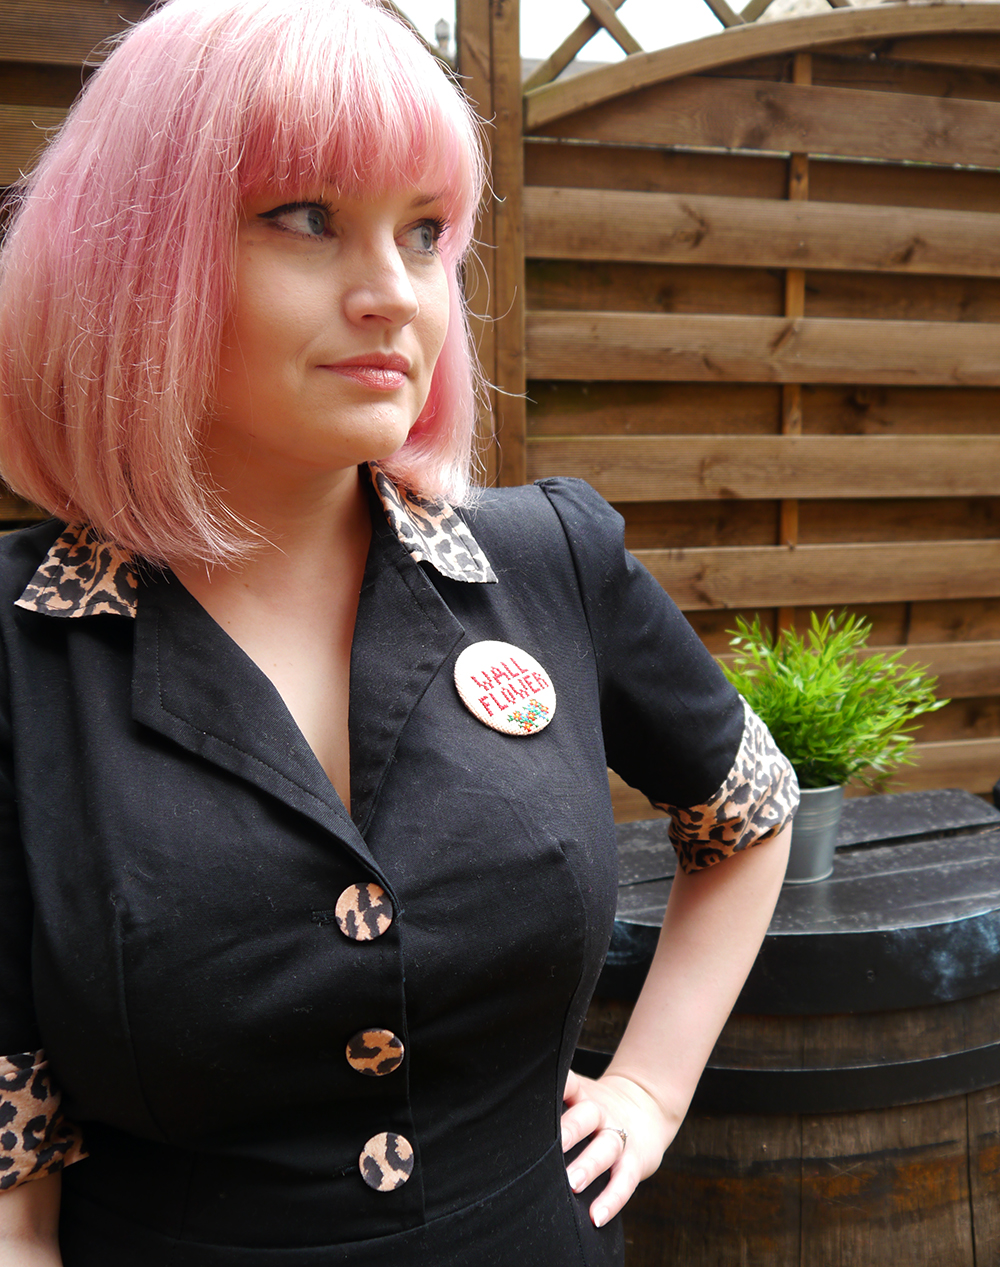 Tara Starlet, leopard print, pink hair, Cilla Black style, doughnut, novelty handbag, big bangs, retro style, Scotstreetstyle, magasinxstitch, Lady Muck of Whitstable, Metropolitan Fashion Show